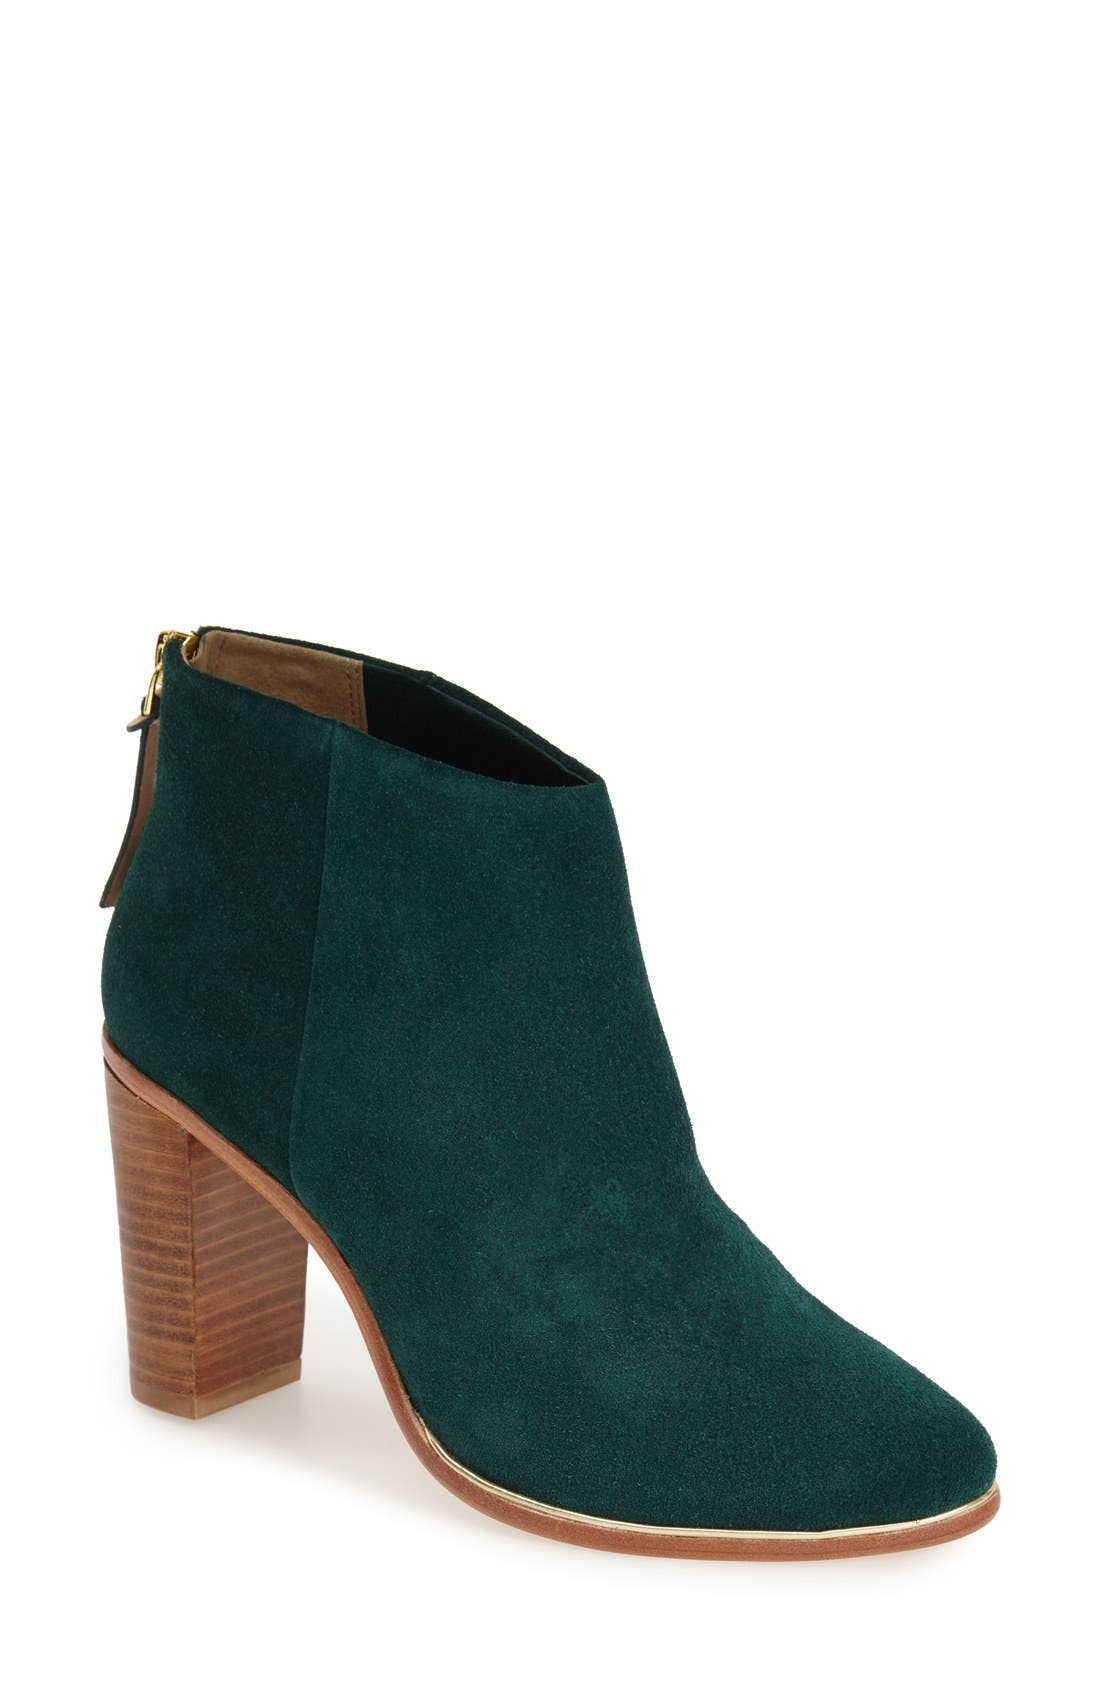 Alternate Image 1 Selected - Ted Baker London 'Lorca 2' Bootie (Women)